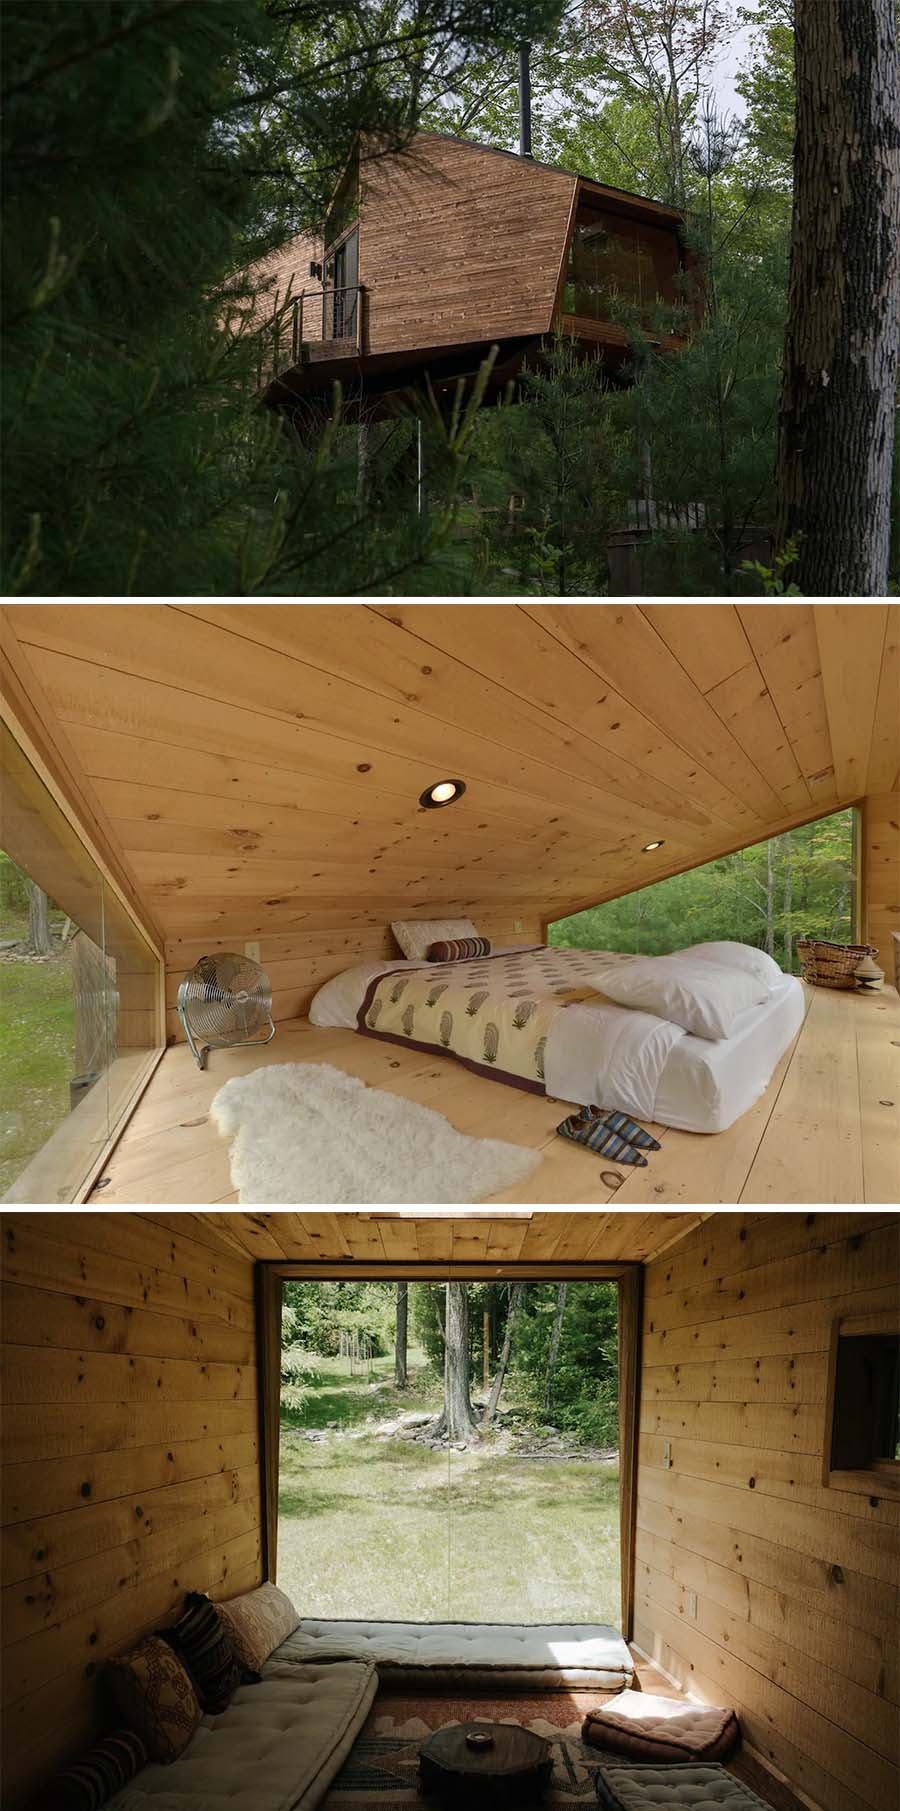 Futuristic cabin Airbnb in the woods - Willow Treehouse